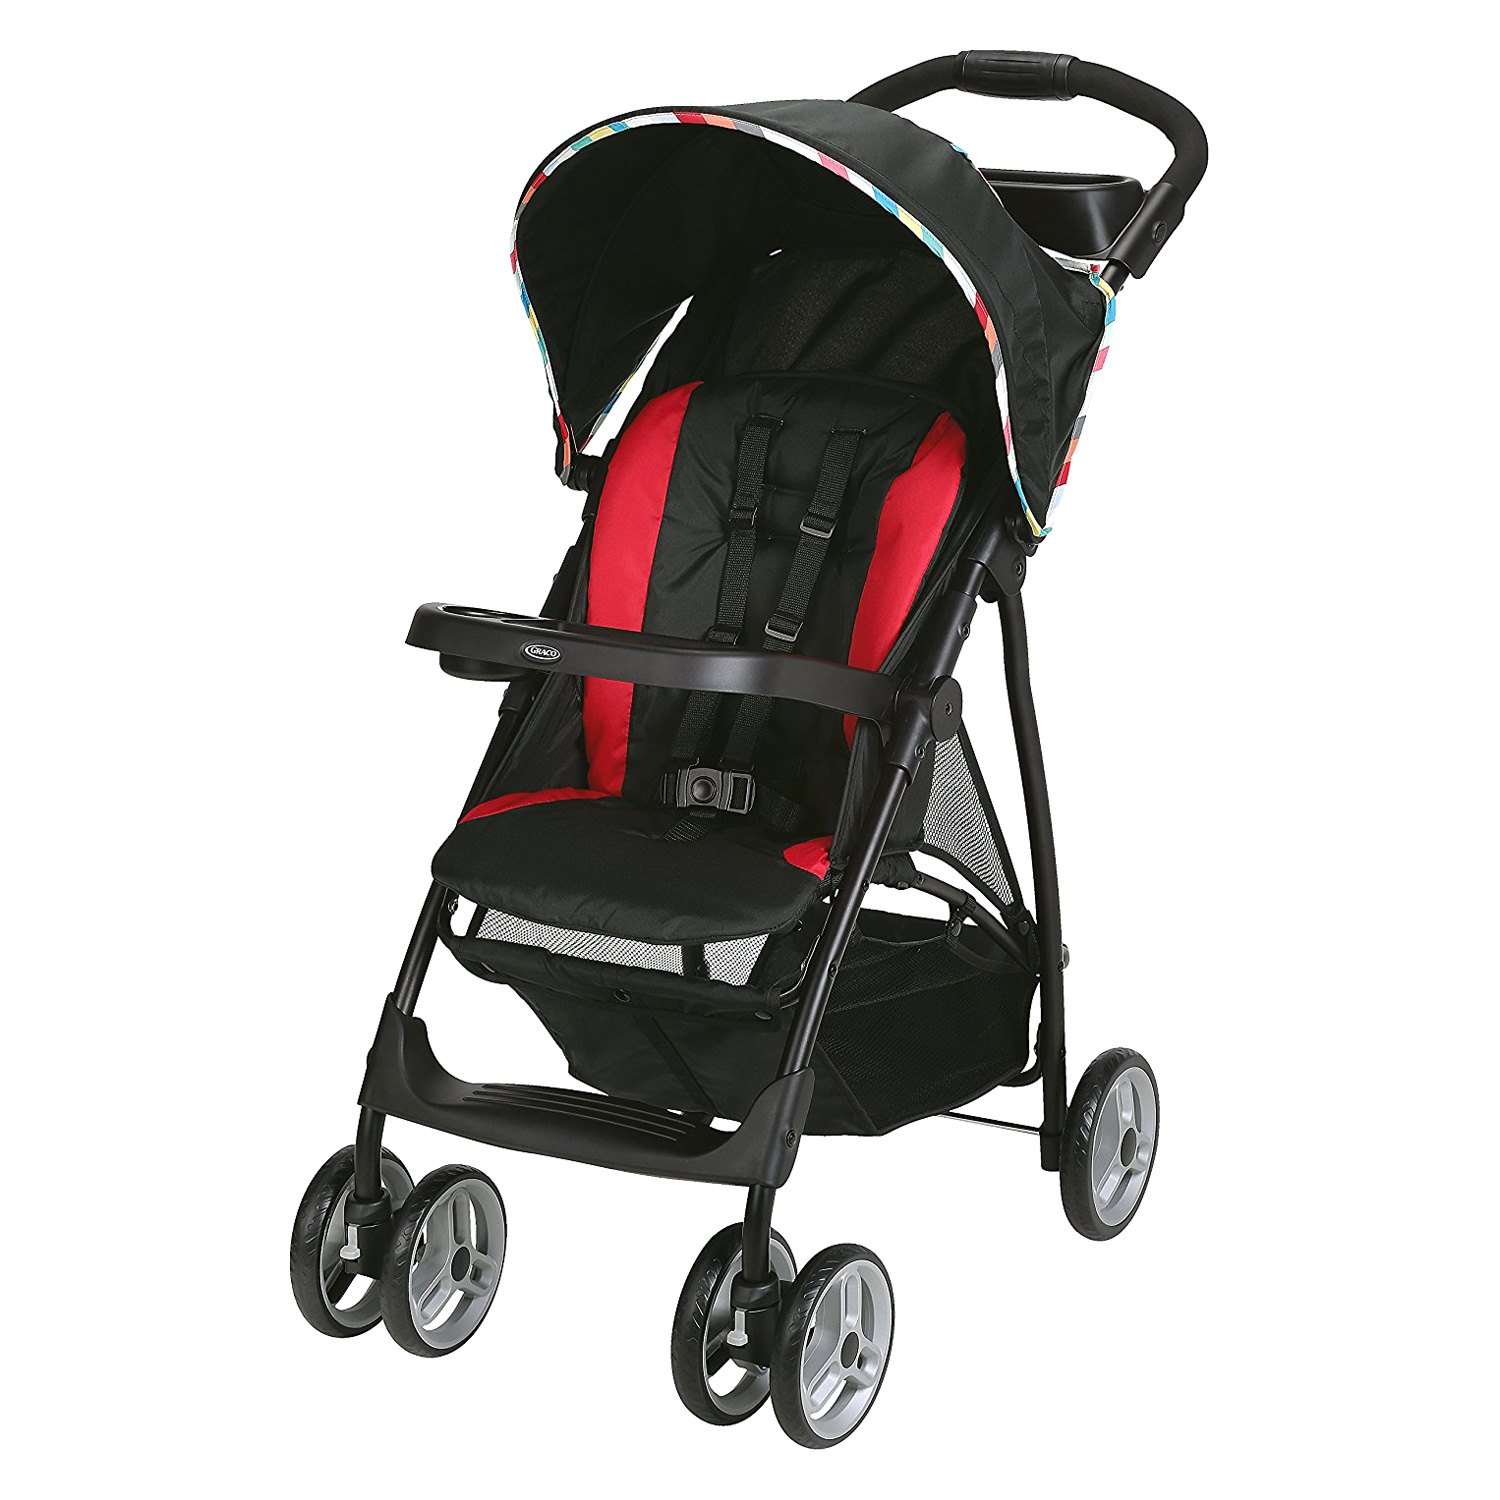 GRACO Lite Rider Play